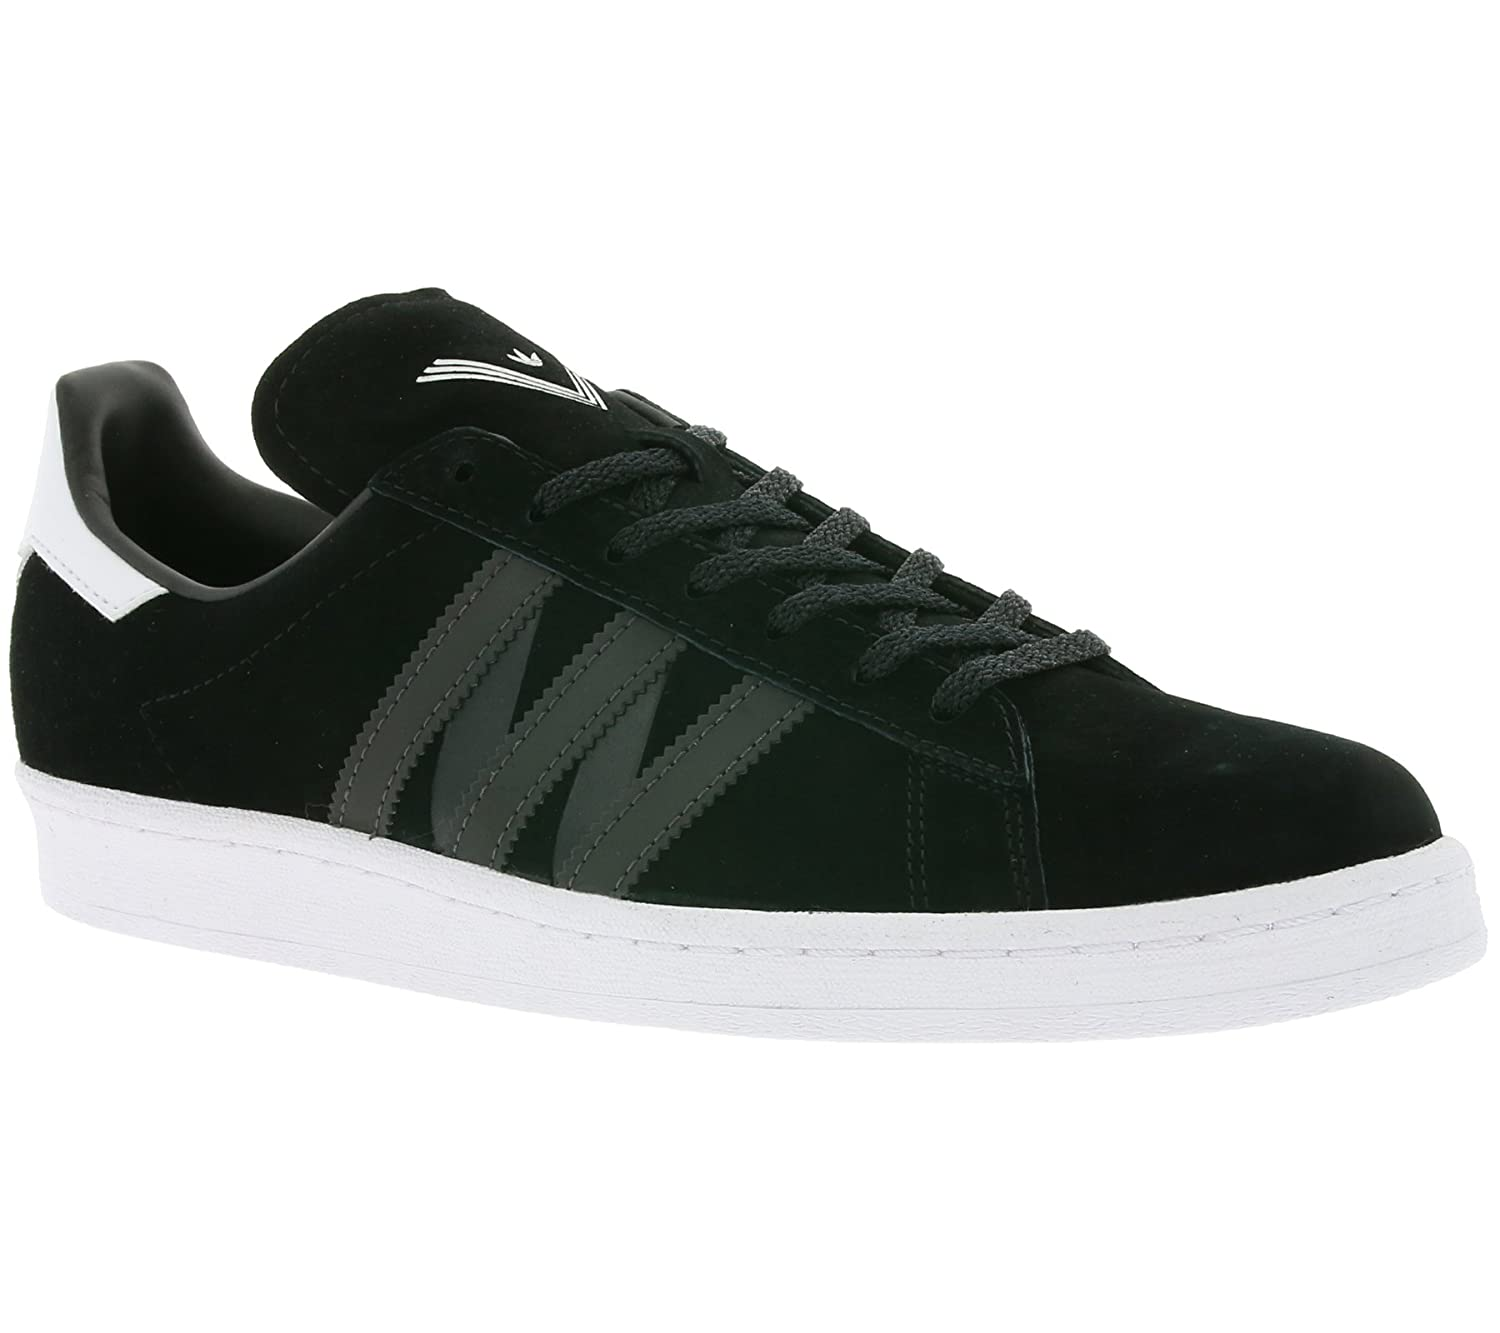 bd90a0d8ecd2 adidas White Mountaineering Campus 80s Real leather sneaker black BA7516   Amazon.co.uk  Shoes   Bags